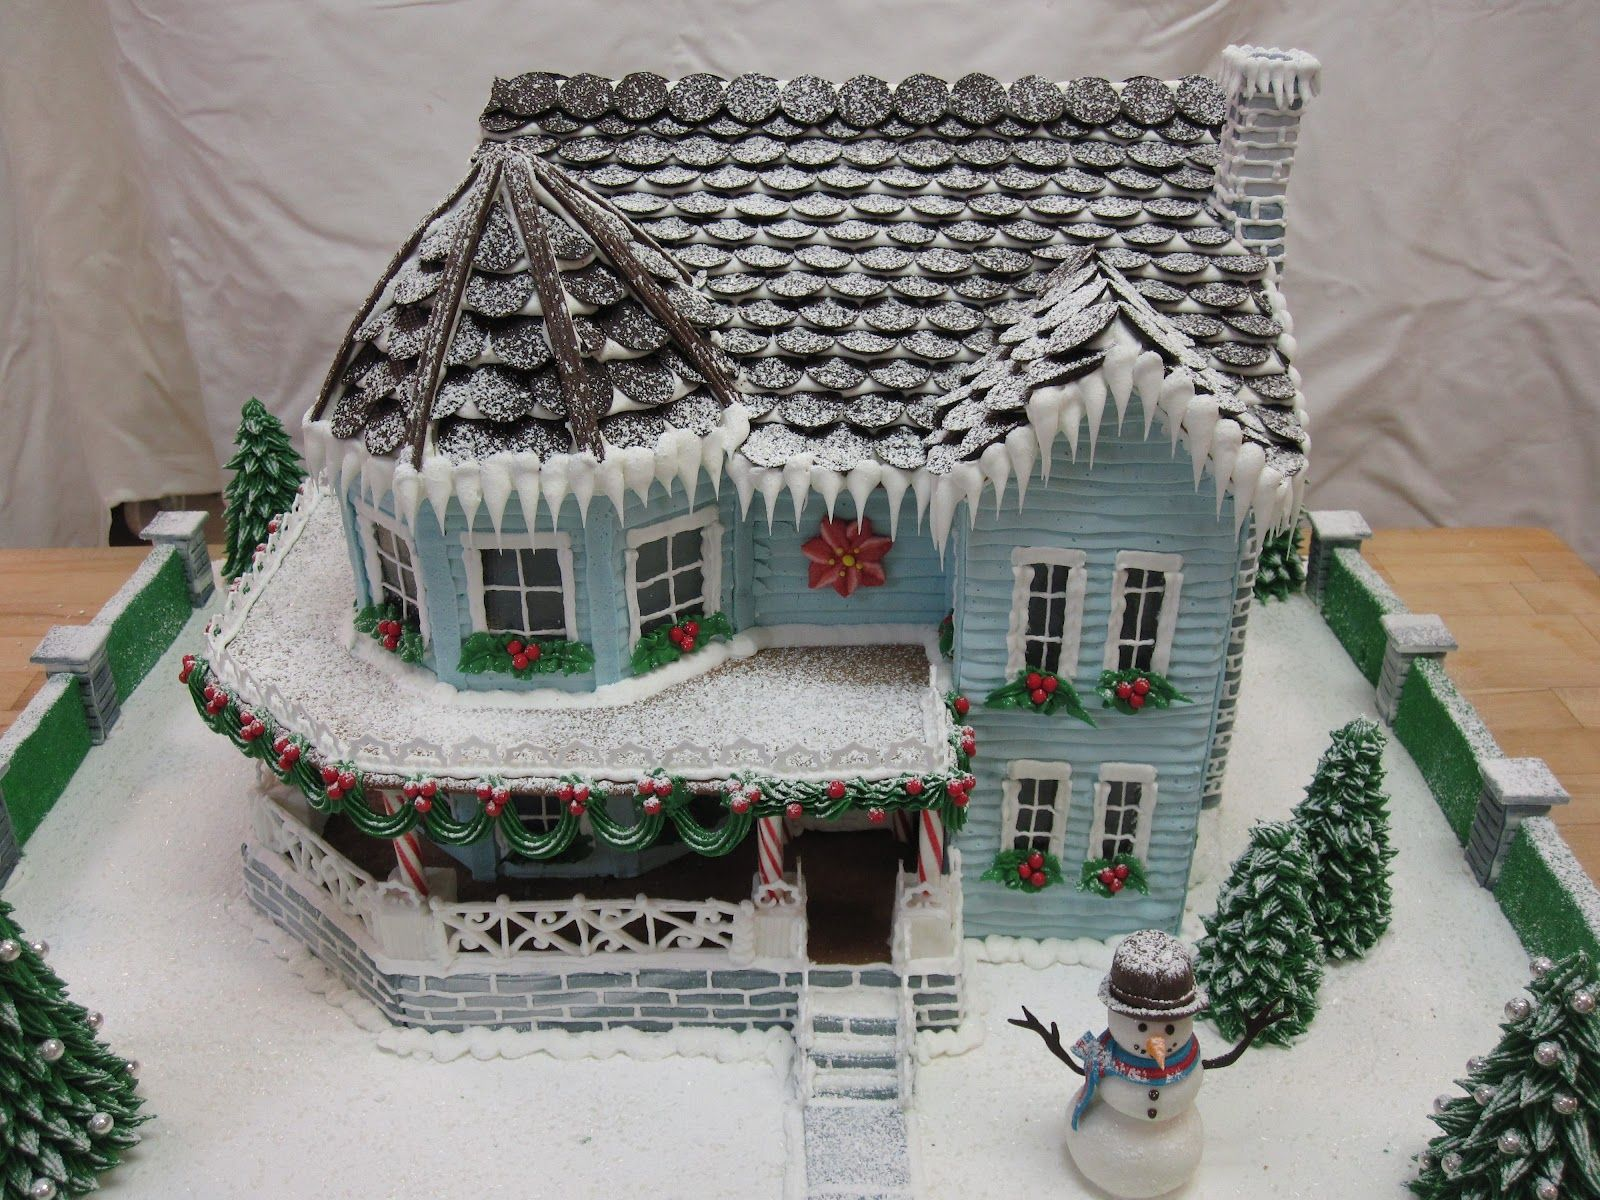 This Website Has Elaborate Gingerbread House Templates To Purchase